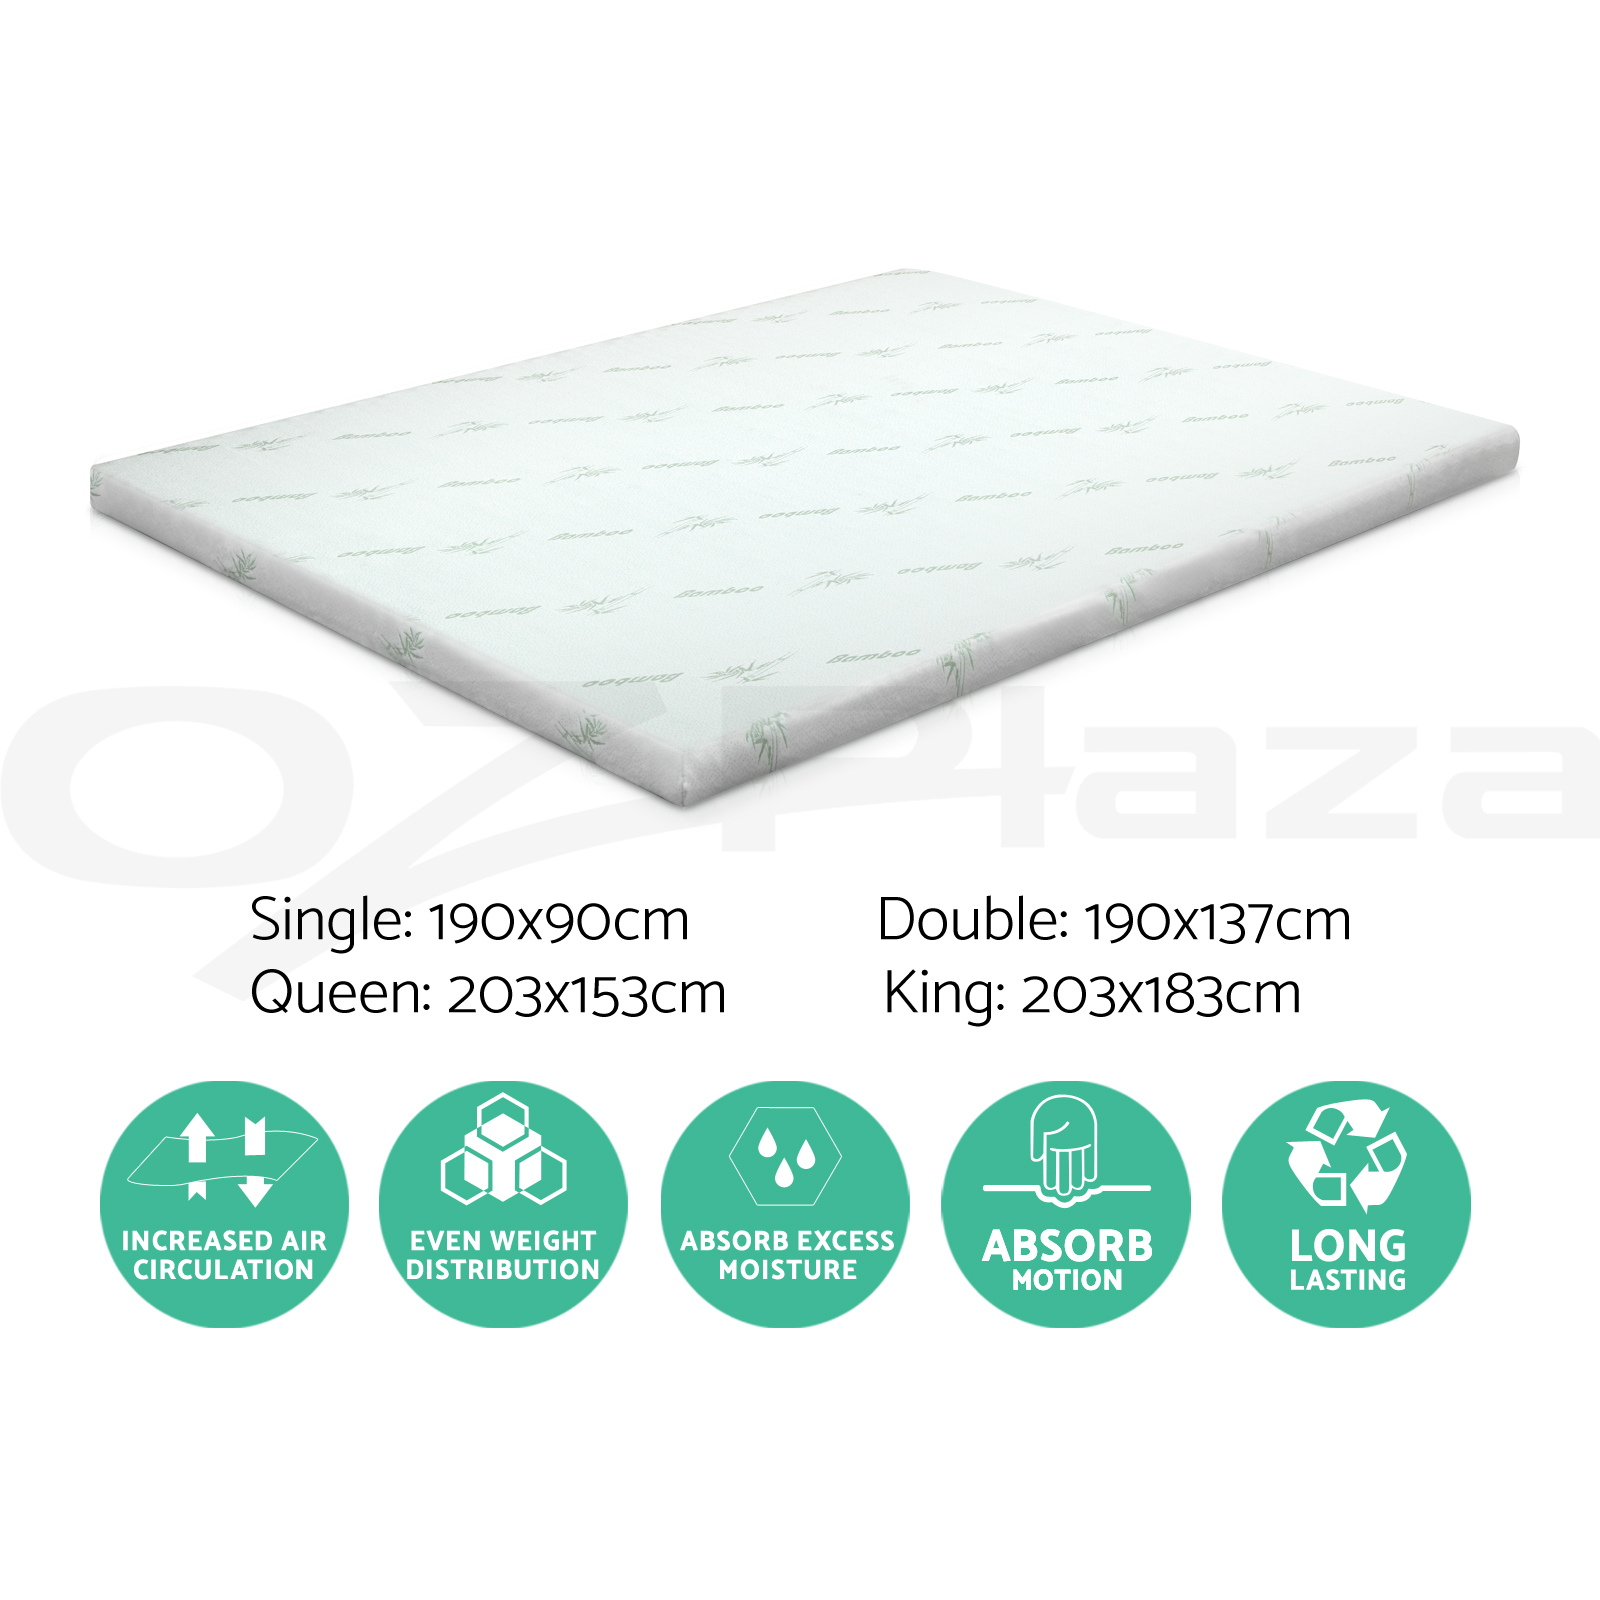 Giselle Bedding COOL GEL Memory Foam Mattress Topper BAMBOO 8CM 5-Zone S D K Q